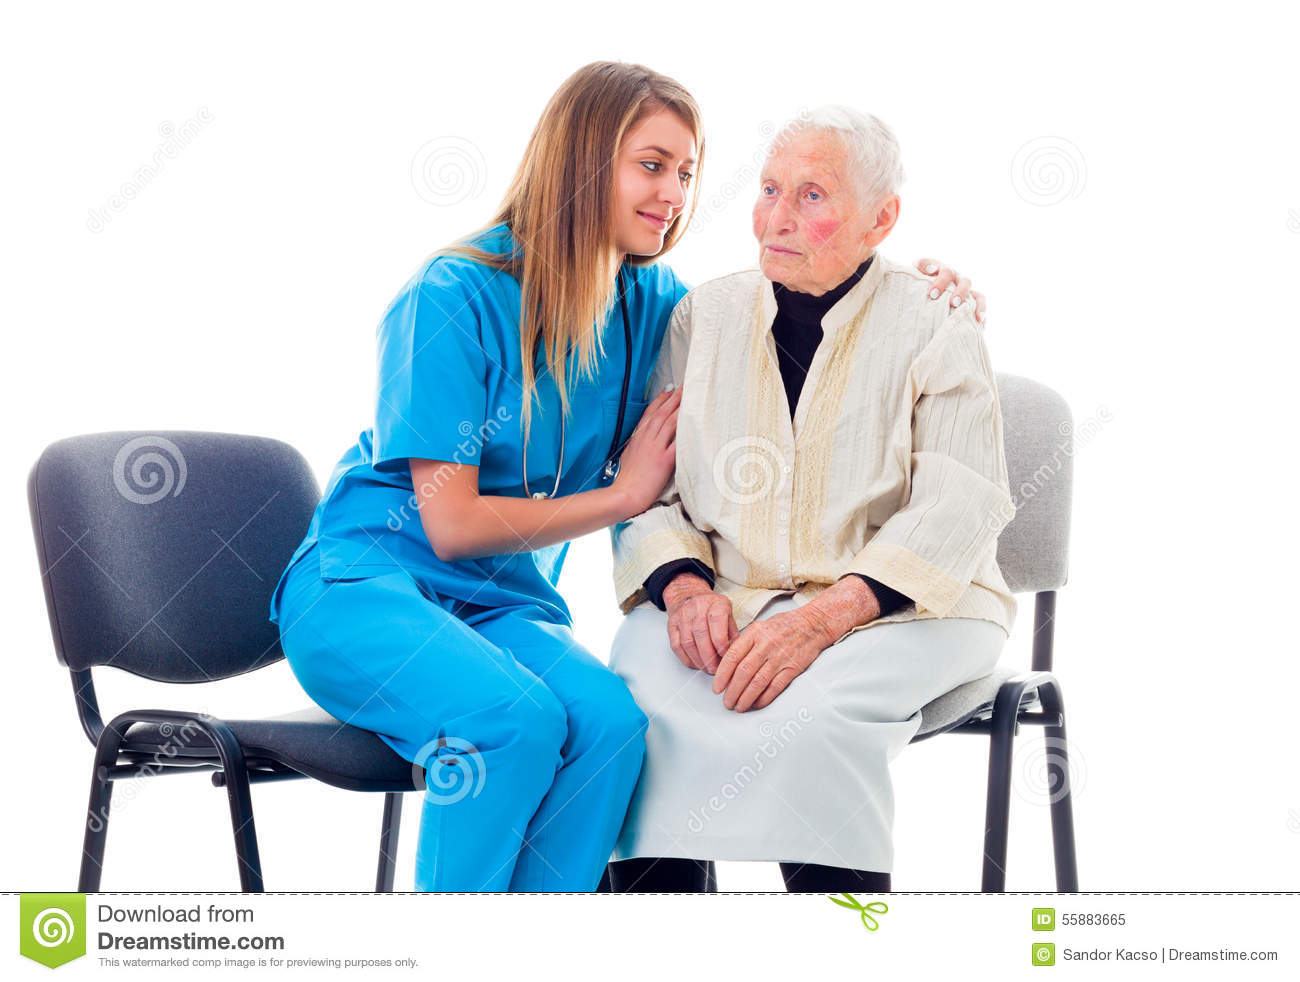 chairs for elderly assistance plush leather chair nurse consoling worried patient stock photo image 55883665